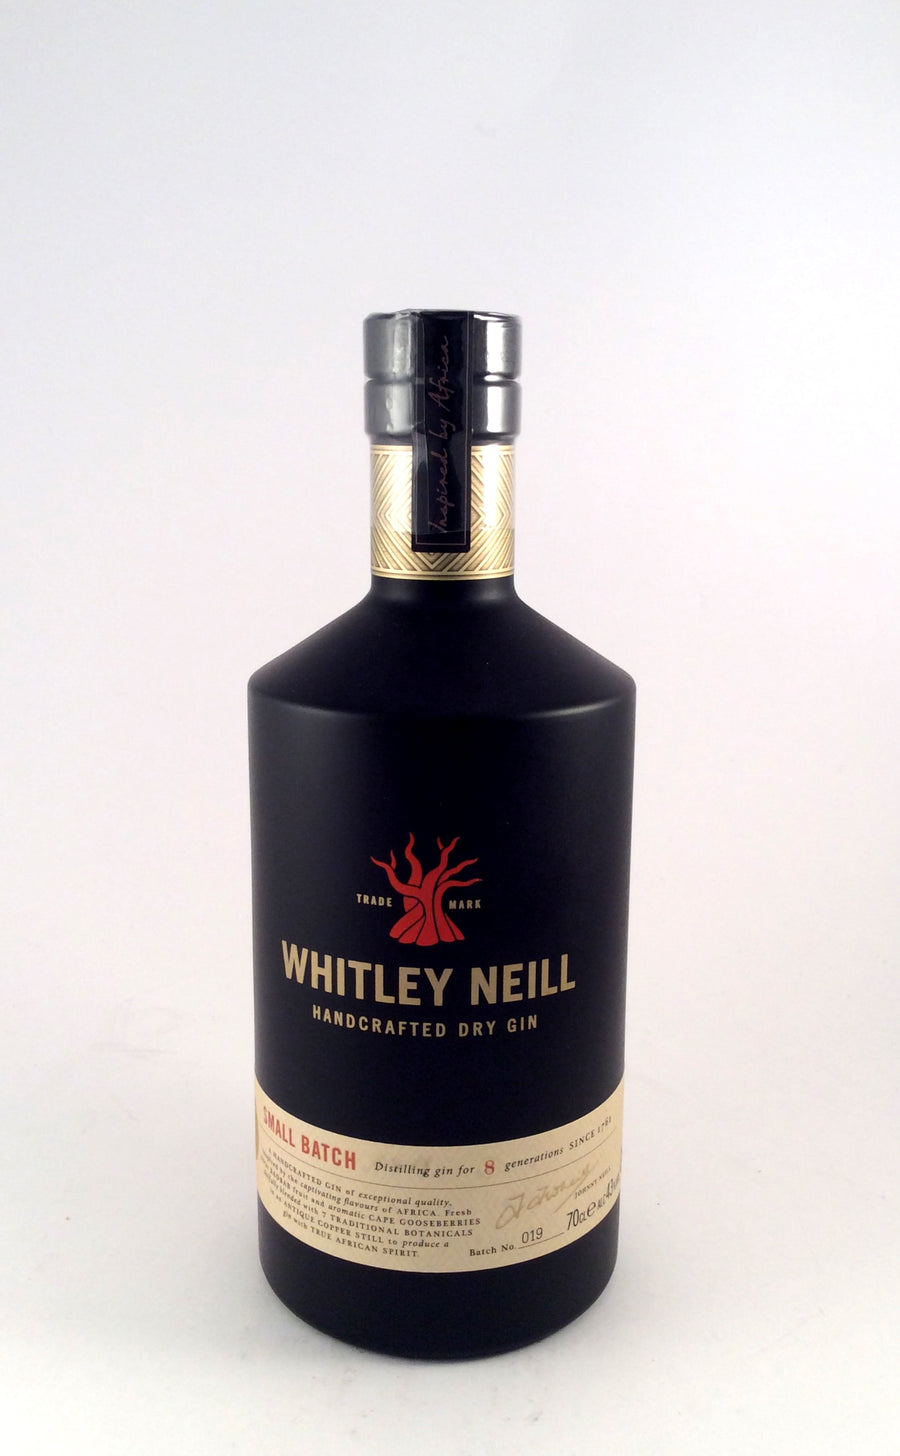 Whitley Neill Handcrafted Dry Gin - Wineseeker